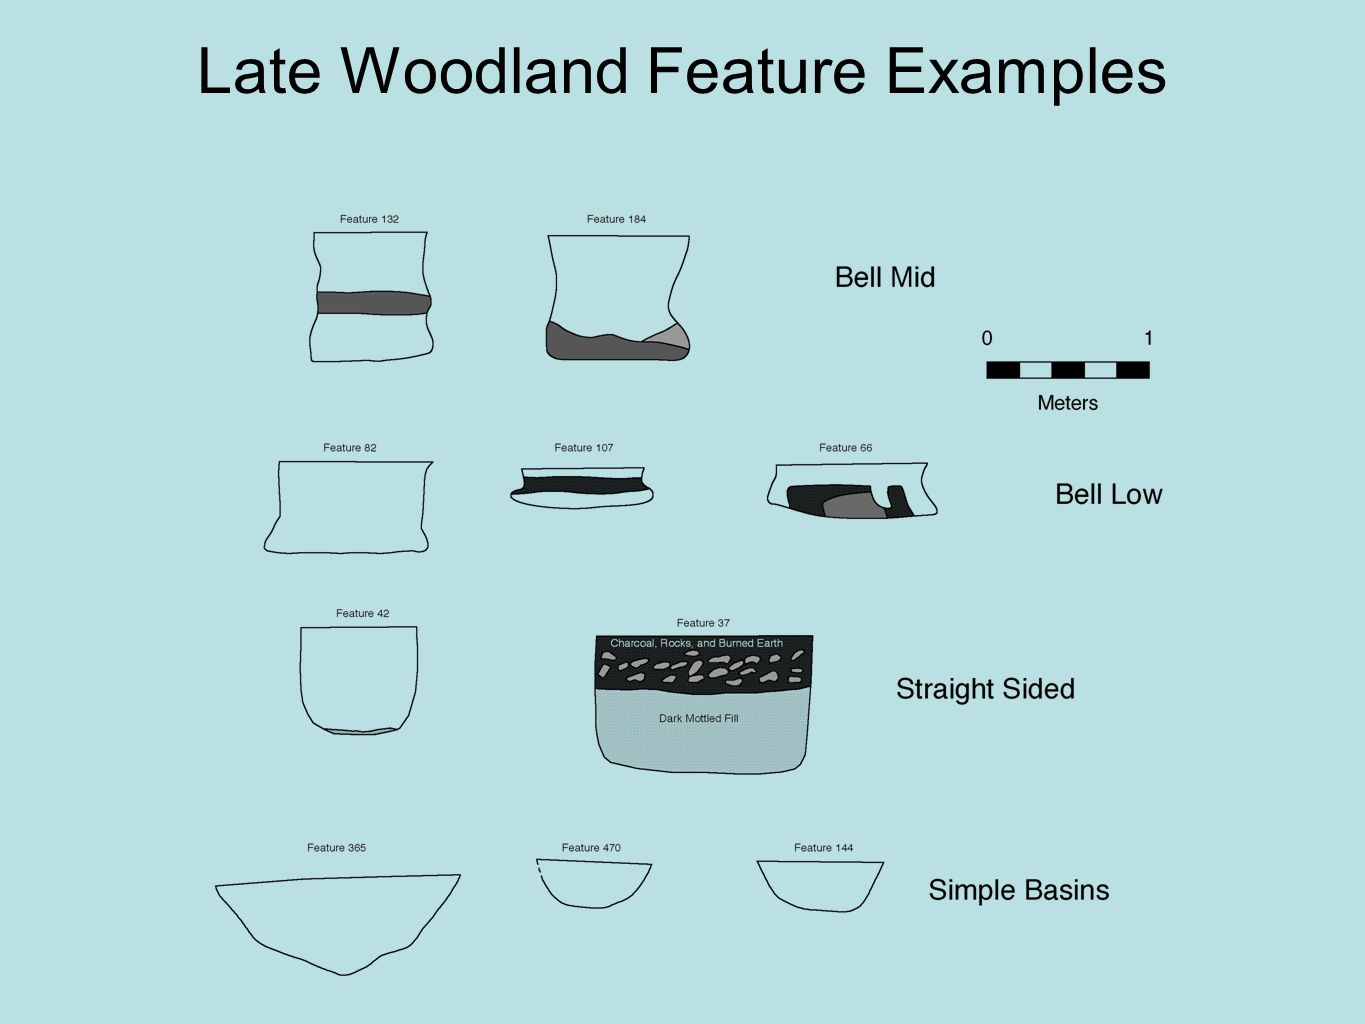 Late Woodland Feature Examples